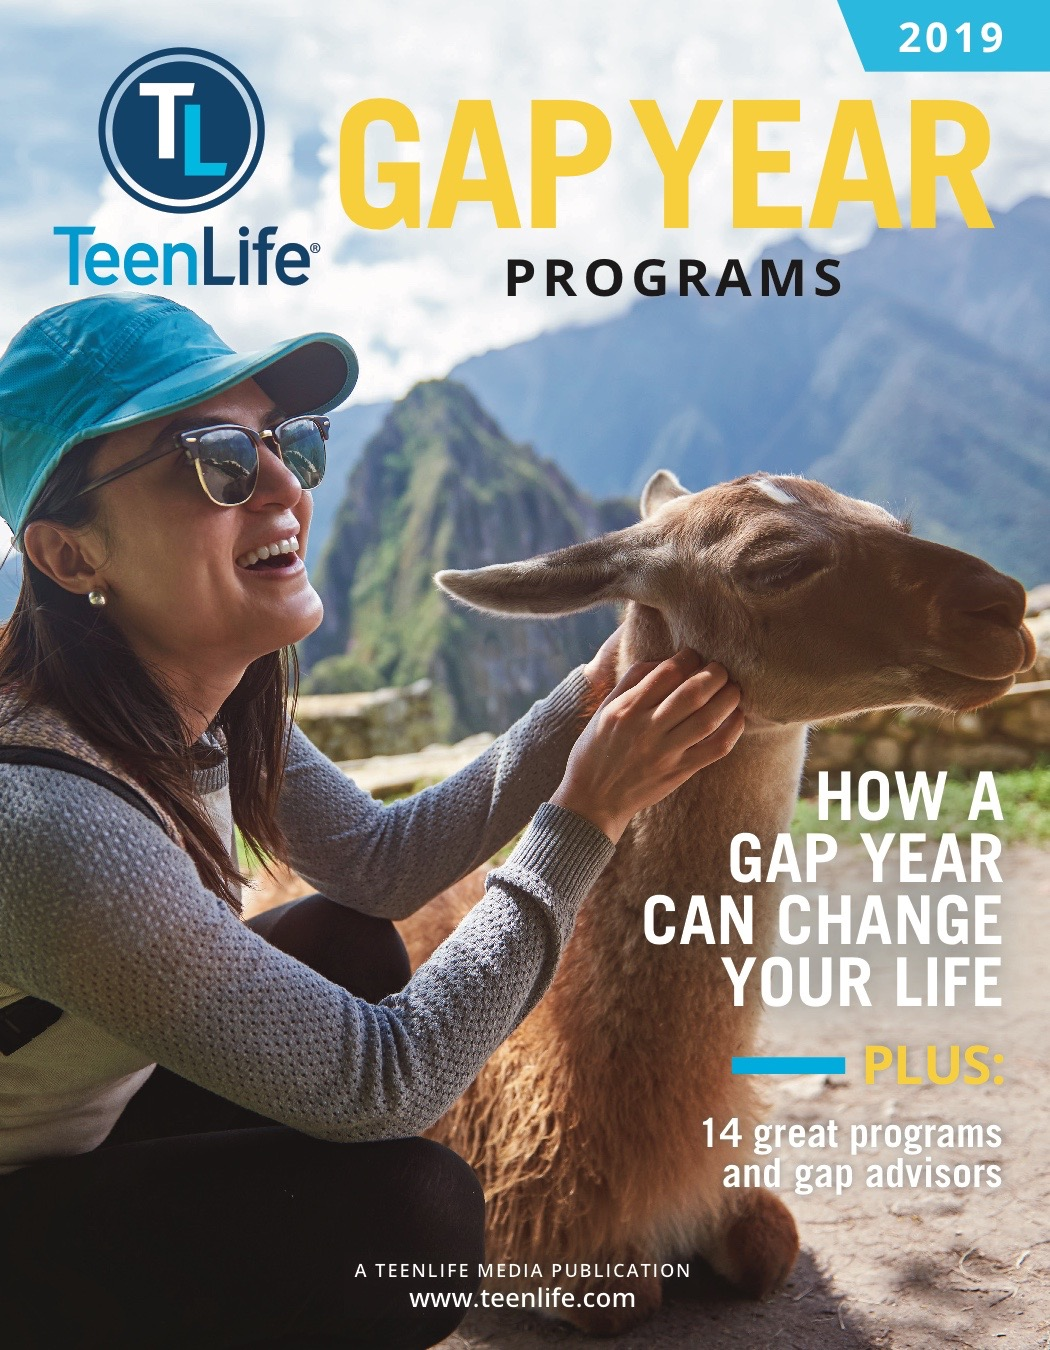 Guide to Gap Year Programs 2019-TeenLife